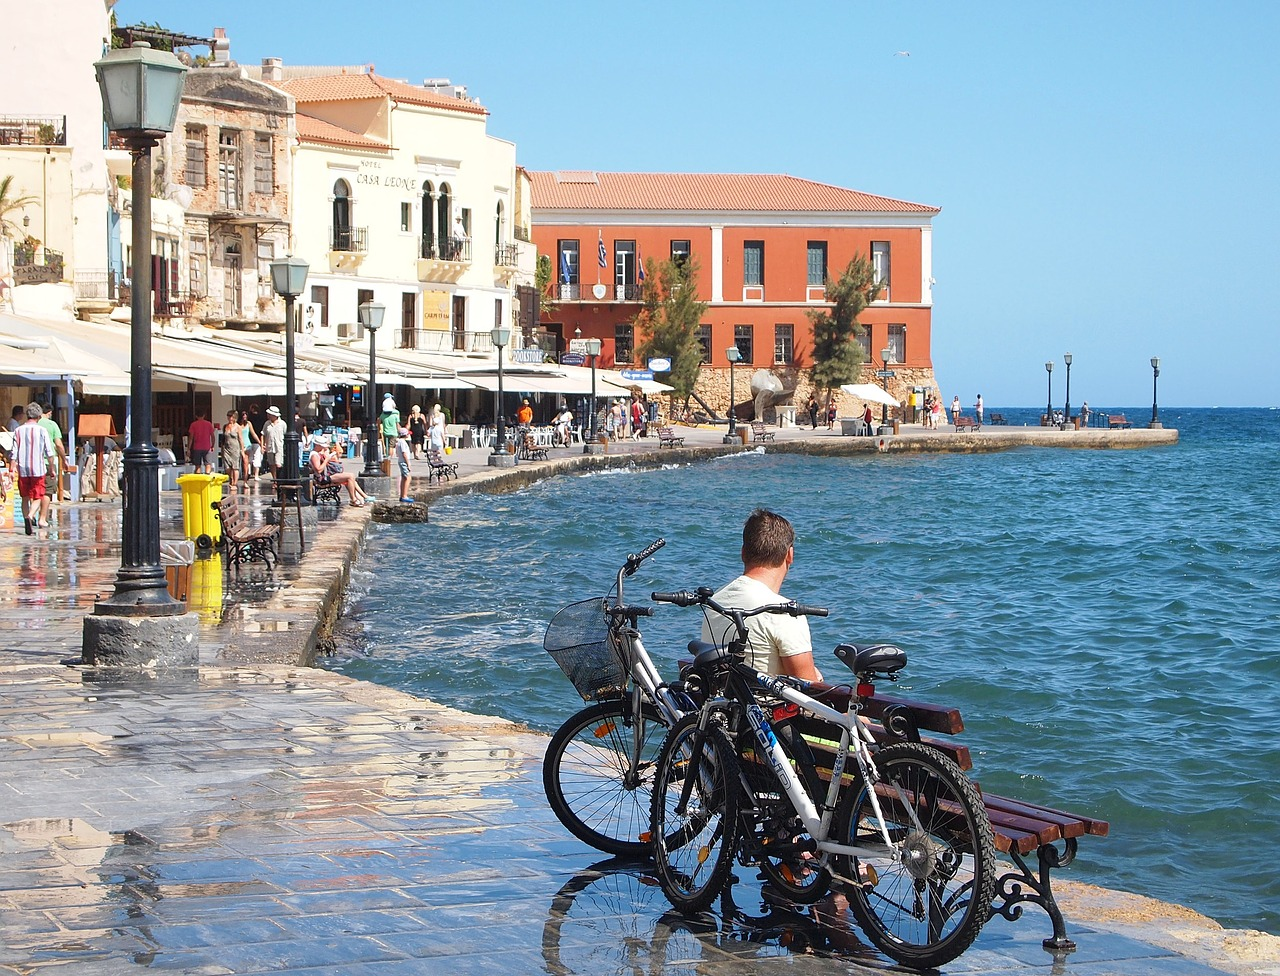 Chania Old Port